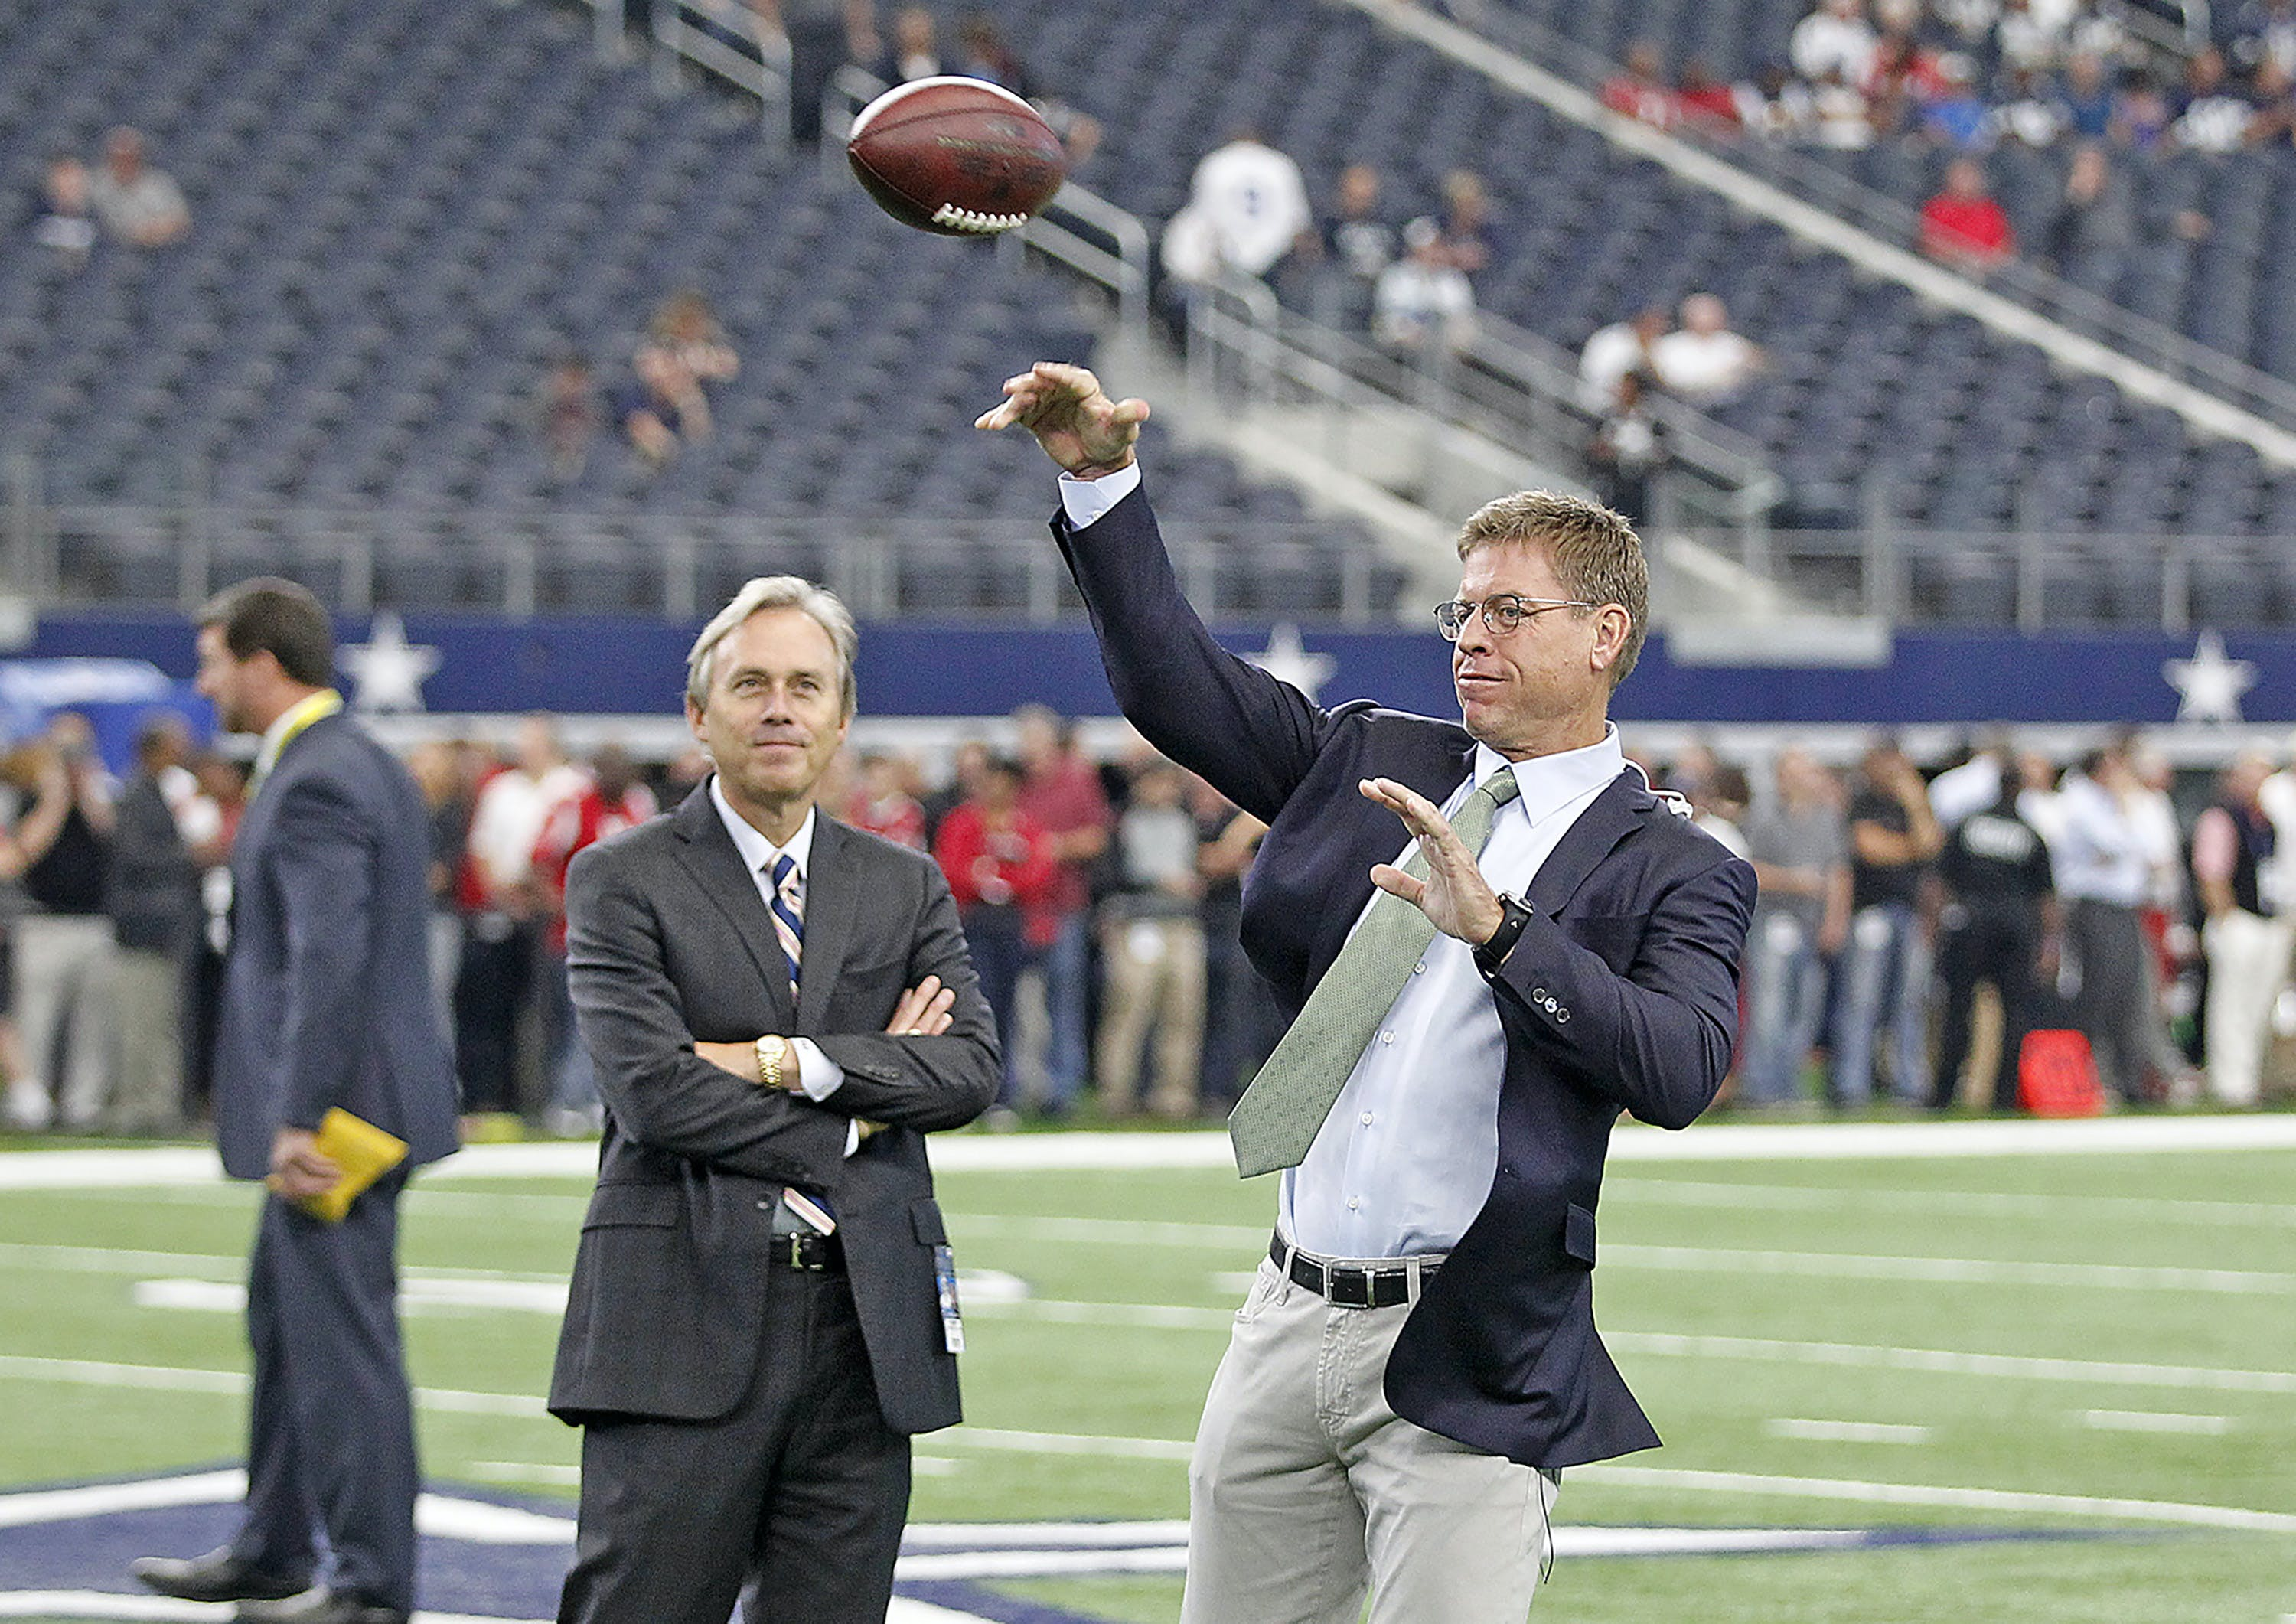 Fox Sports announcer Troy Aikman passes before an NFL game between the Dallas Cowboys against the Atlanta Falcons at AT&T Stadium in Arlington, Texas, Sunday, September 27, 2015.   The Falcons defeated the Cowboys, 39-28.  (James D. Smith via AP)